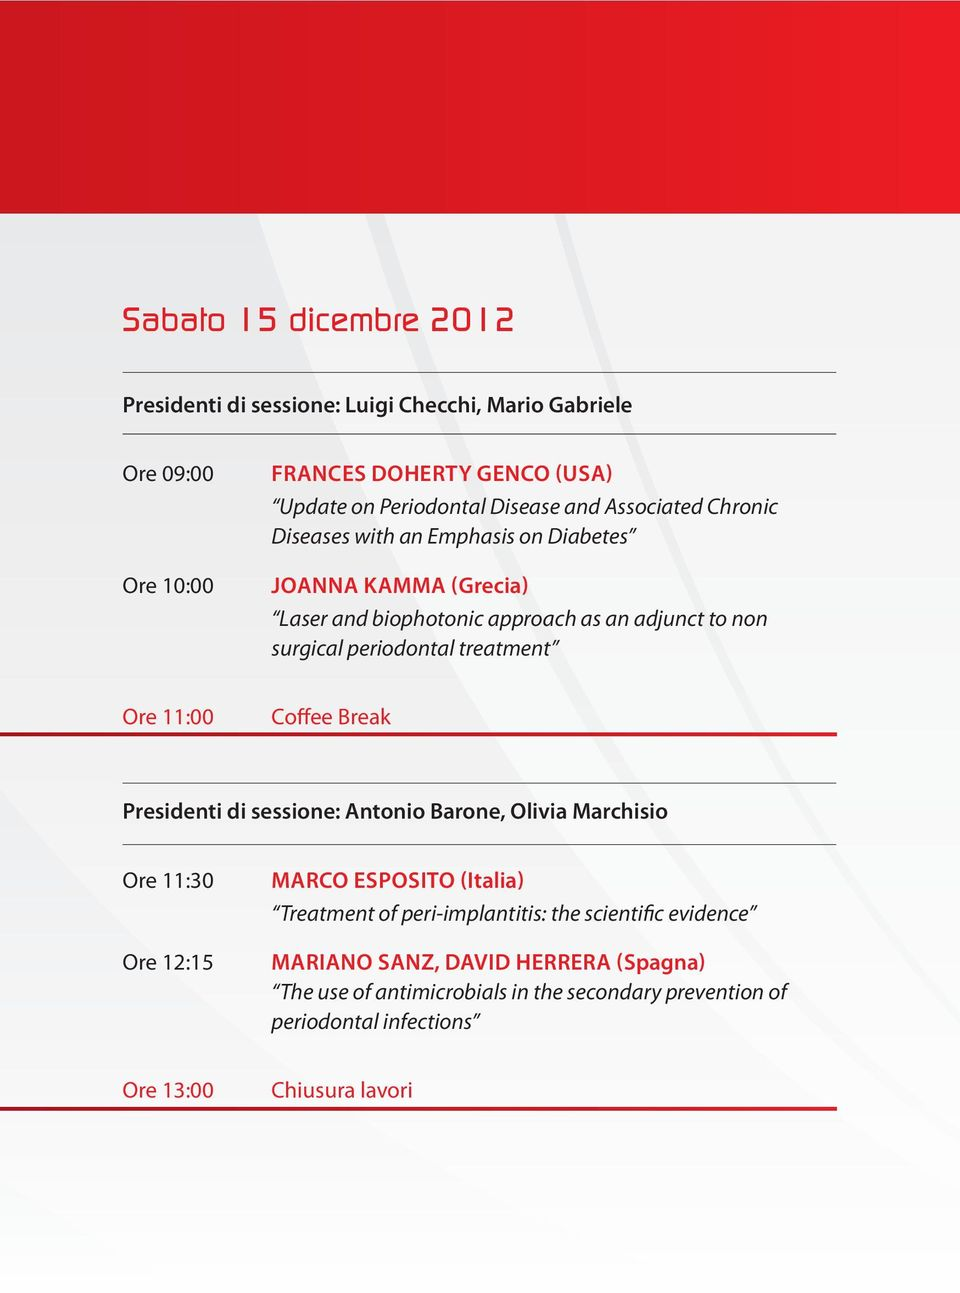 treatment Ore 11:00 Coffee Break Presidenti di sessione: Antonio Barone, Olivia Marchisio Ore 11:30 Ore 12:15 MARCO ESPOSITO (Italia) Treatment of